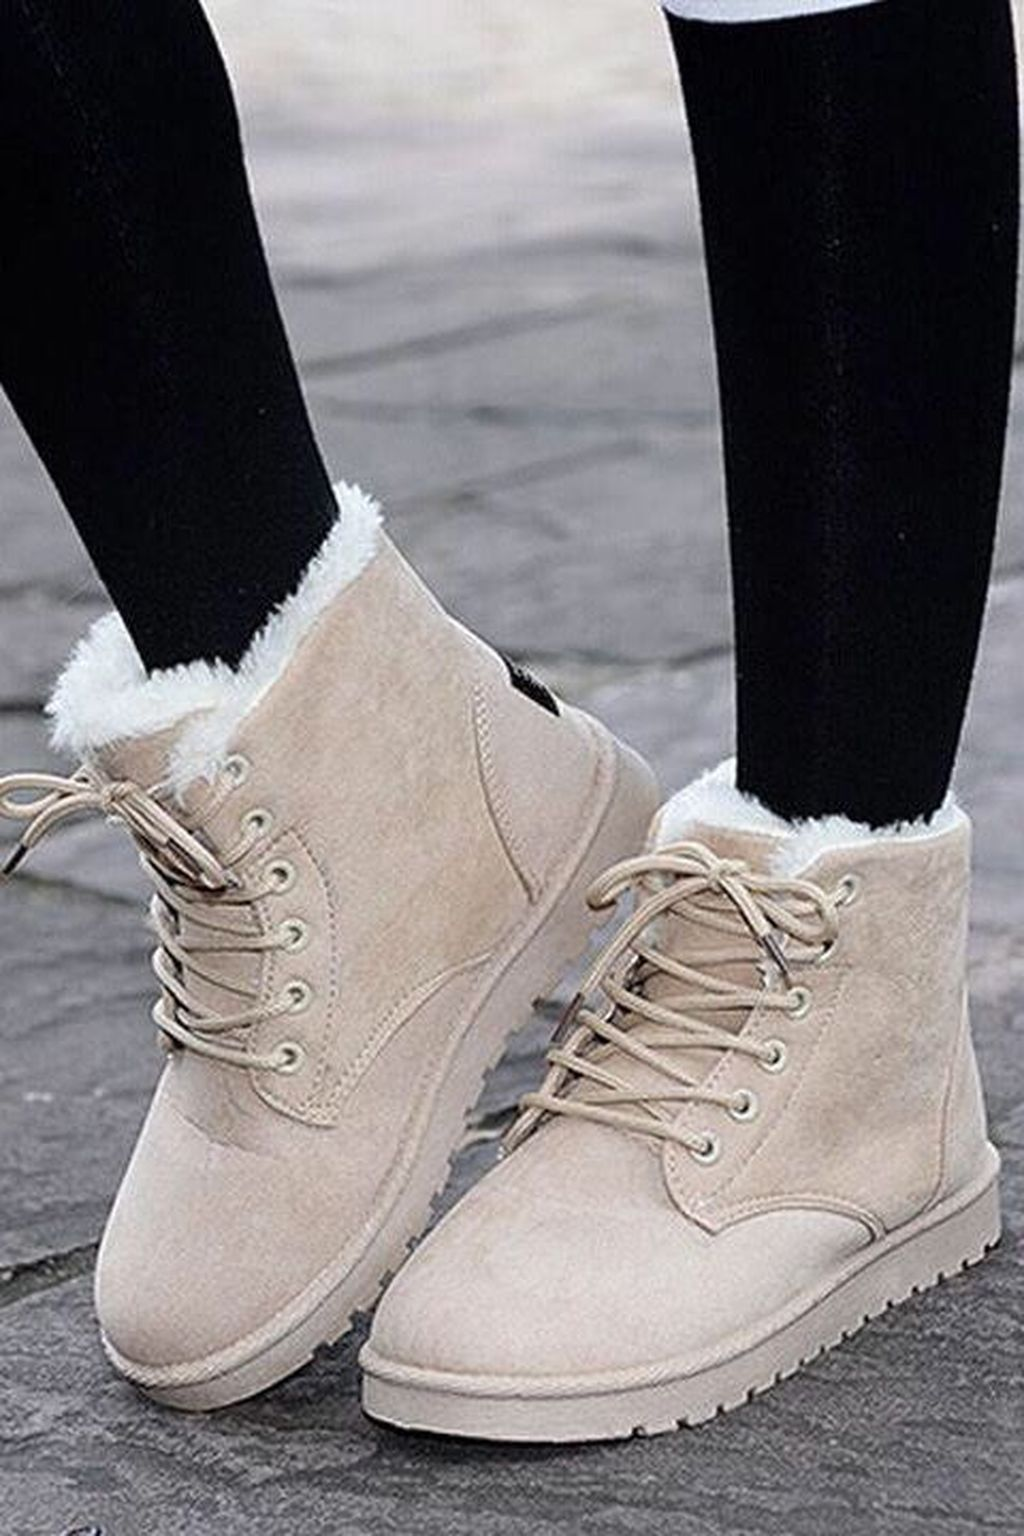 40 Awesome Winter Boots Design Ideas For Beautiful Women Winter Boots Women Womens Boots Boots Fall